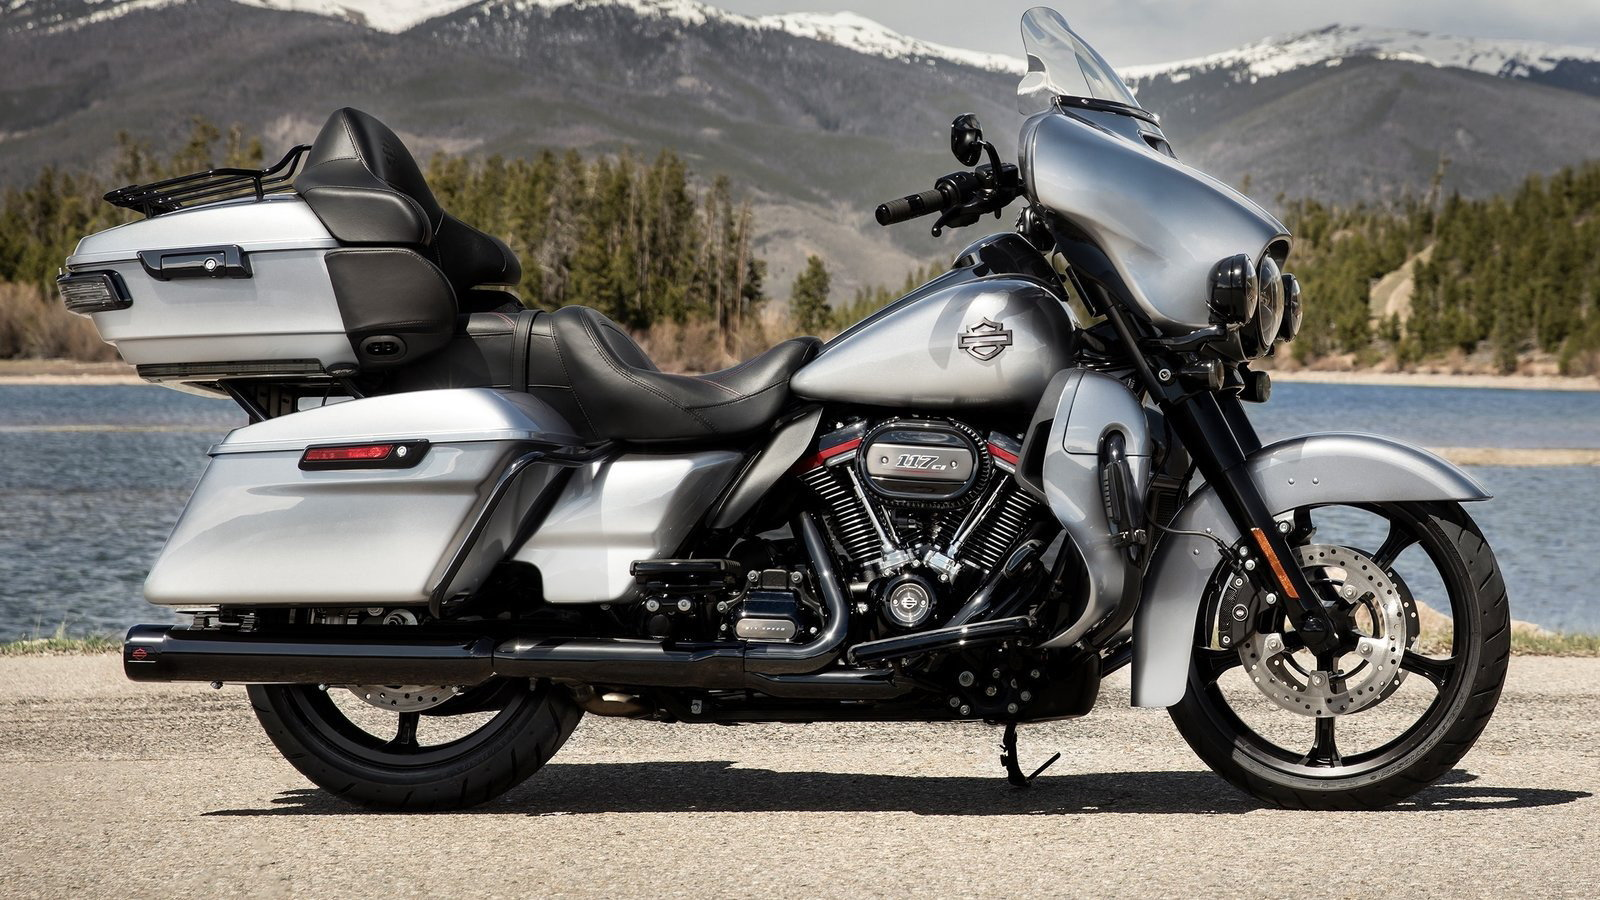 2019 CVO Limited is a Top-Shelf Touring Machine